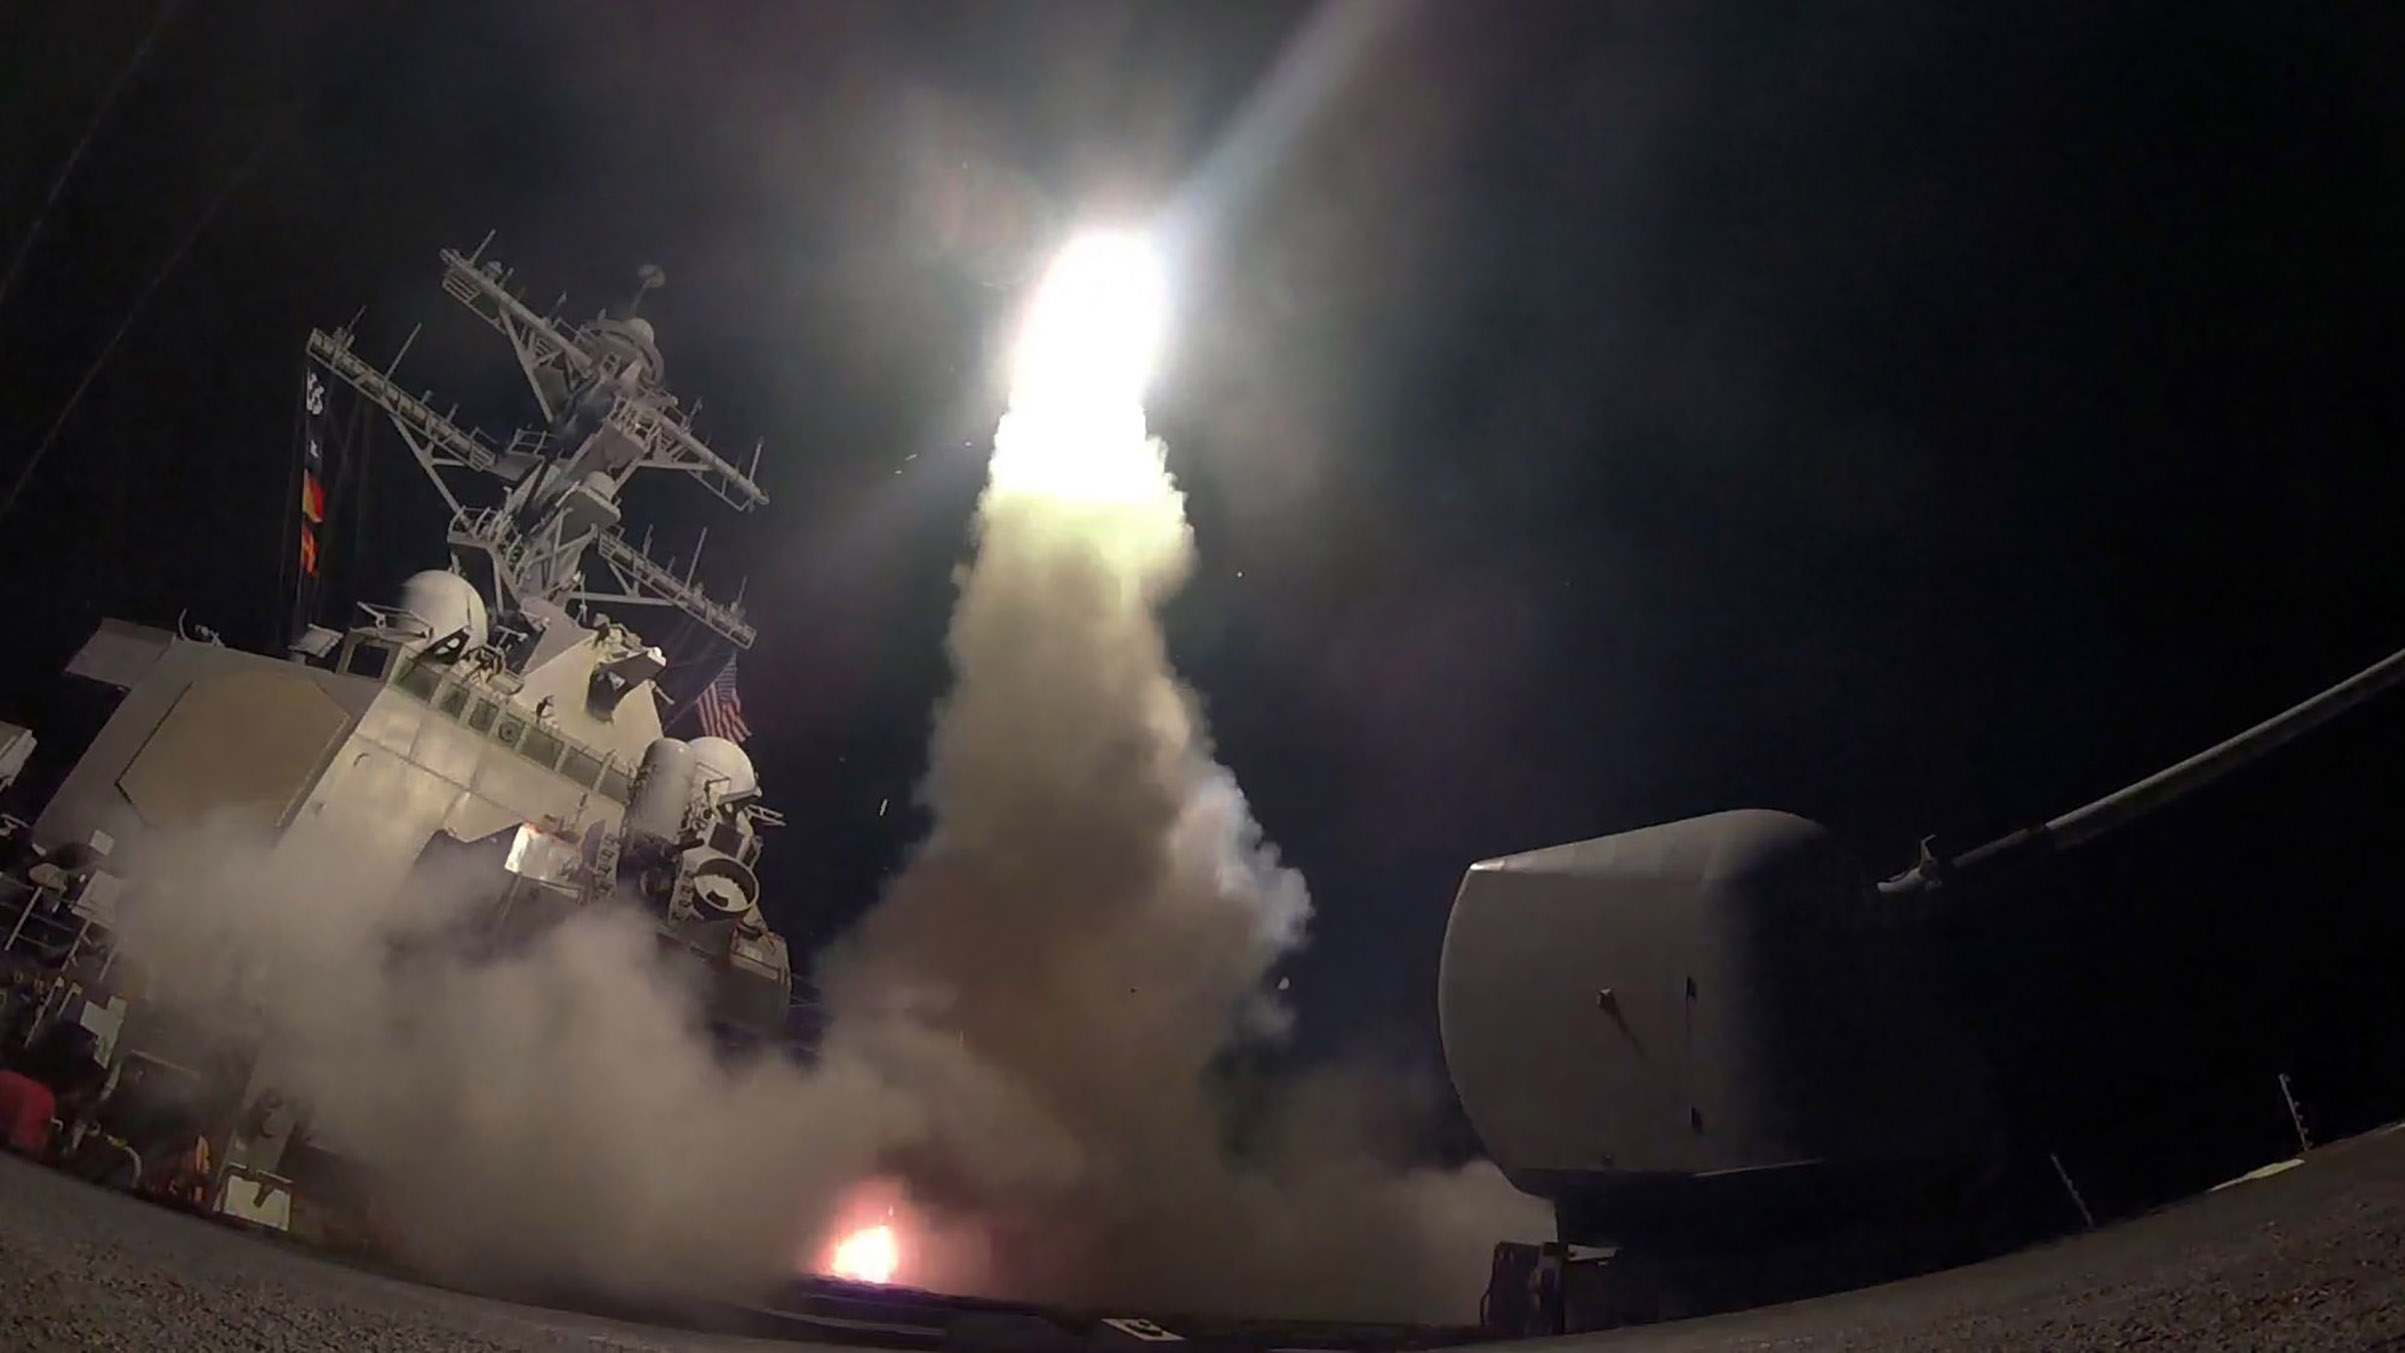 The guided-missile destroyer USS Porter launches a tomahawk land attack missile as the United States blasted a Syrian air base.